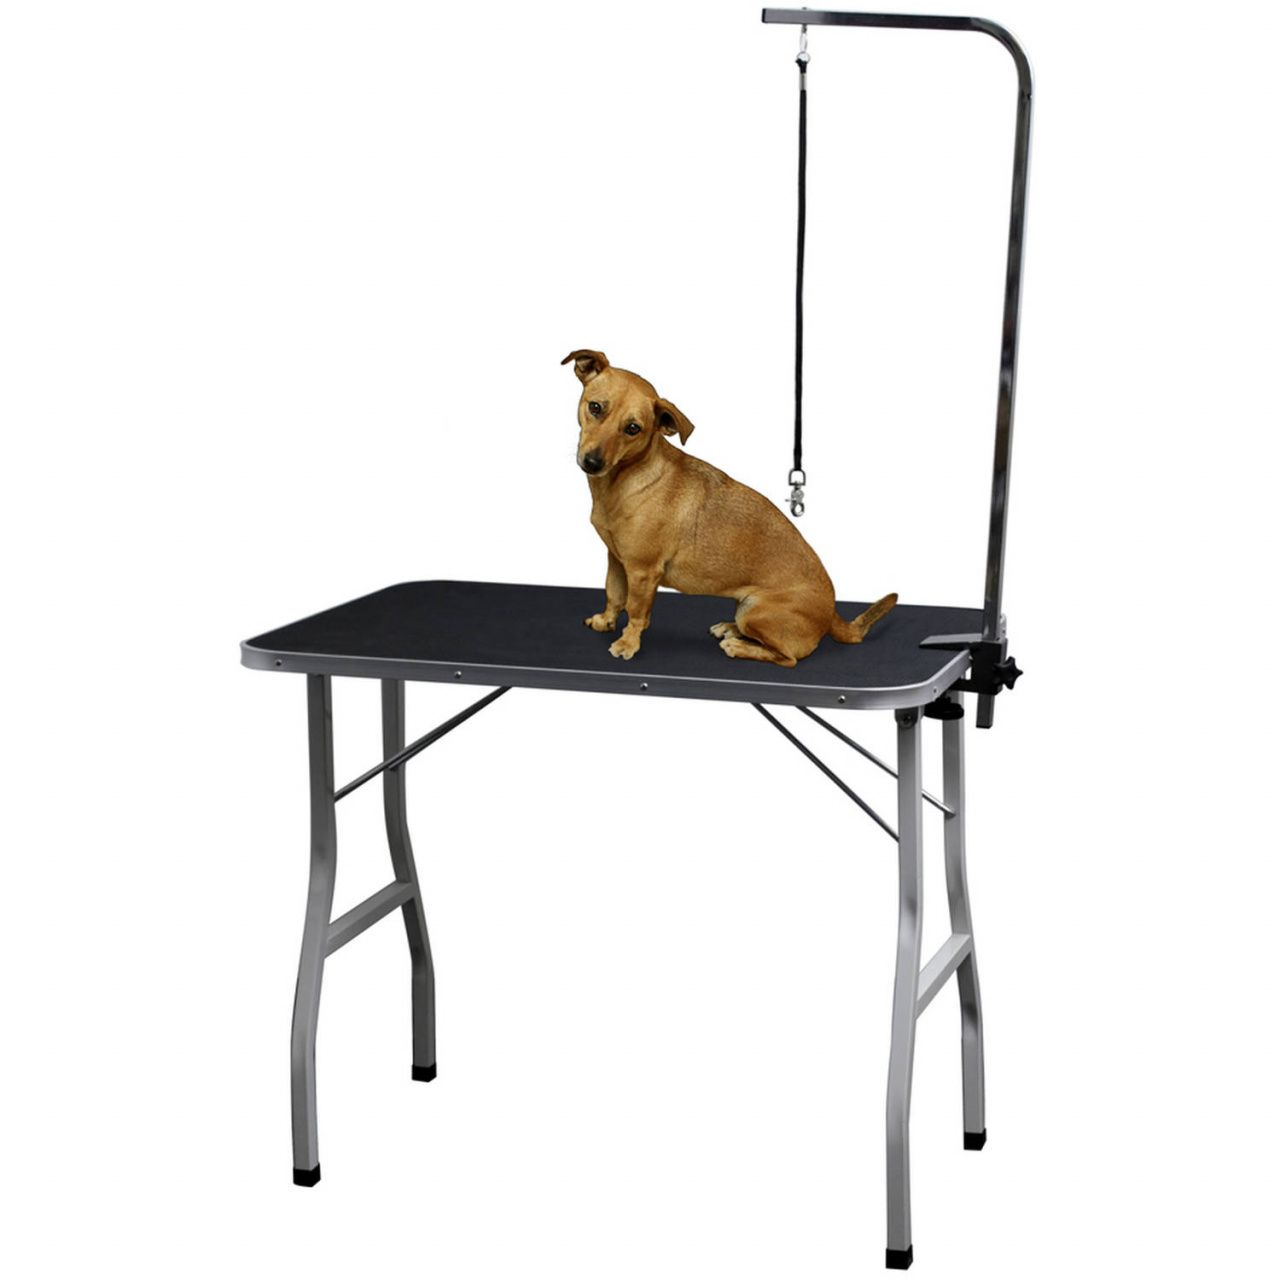 Dog Grooming Tables For Small Dogs Office Furniture For Home Check More At Http Www Nikkitsfun Com Dog Grooming Tables For S With Images Pet Grooming Dog Grooming Pets